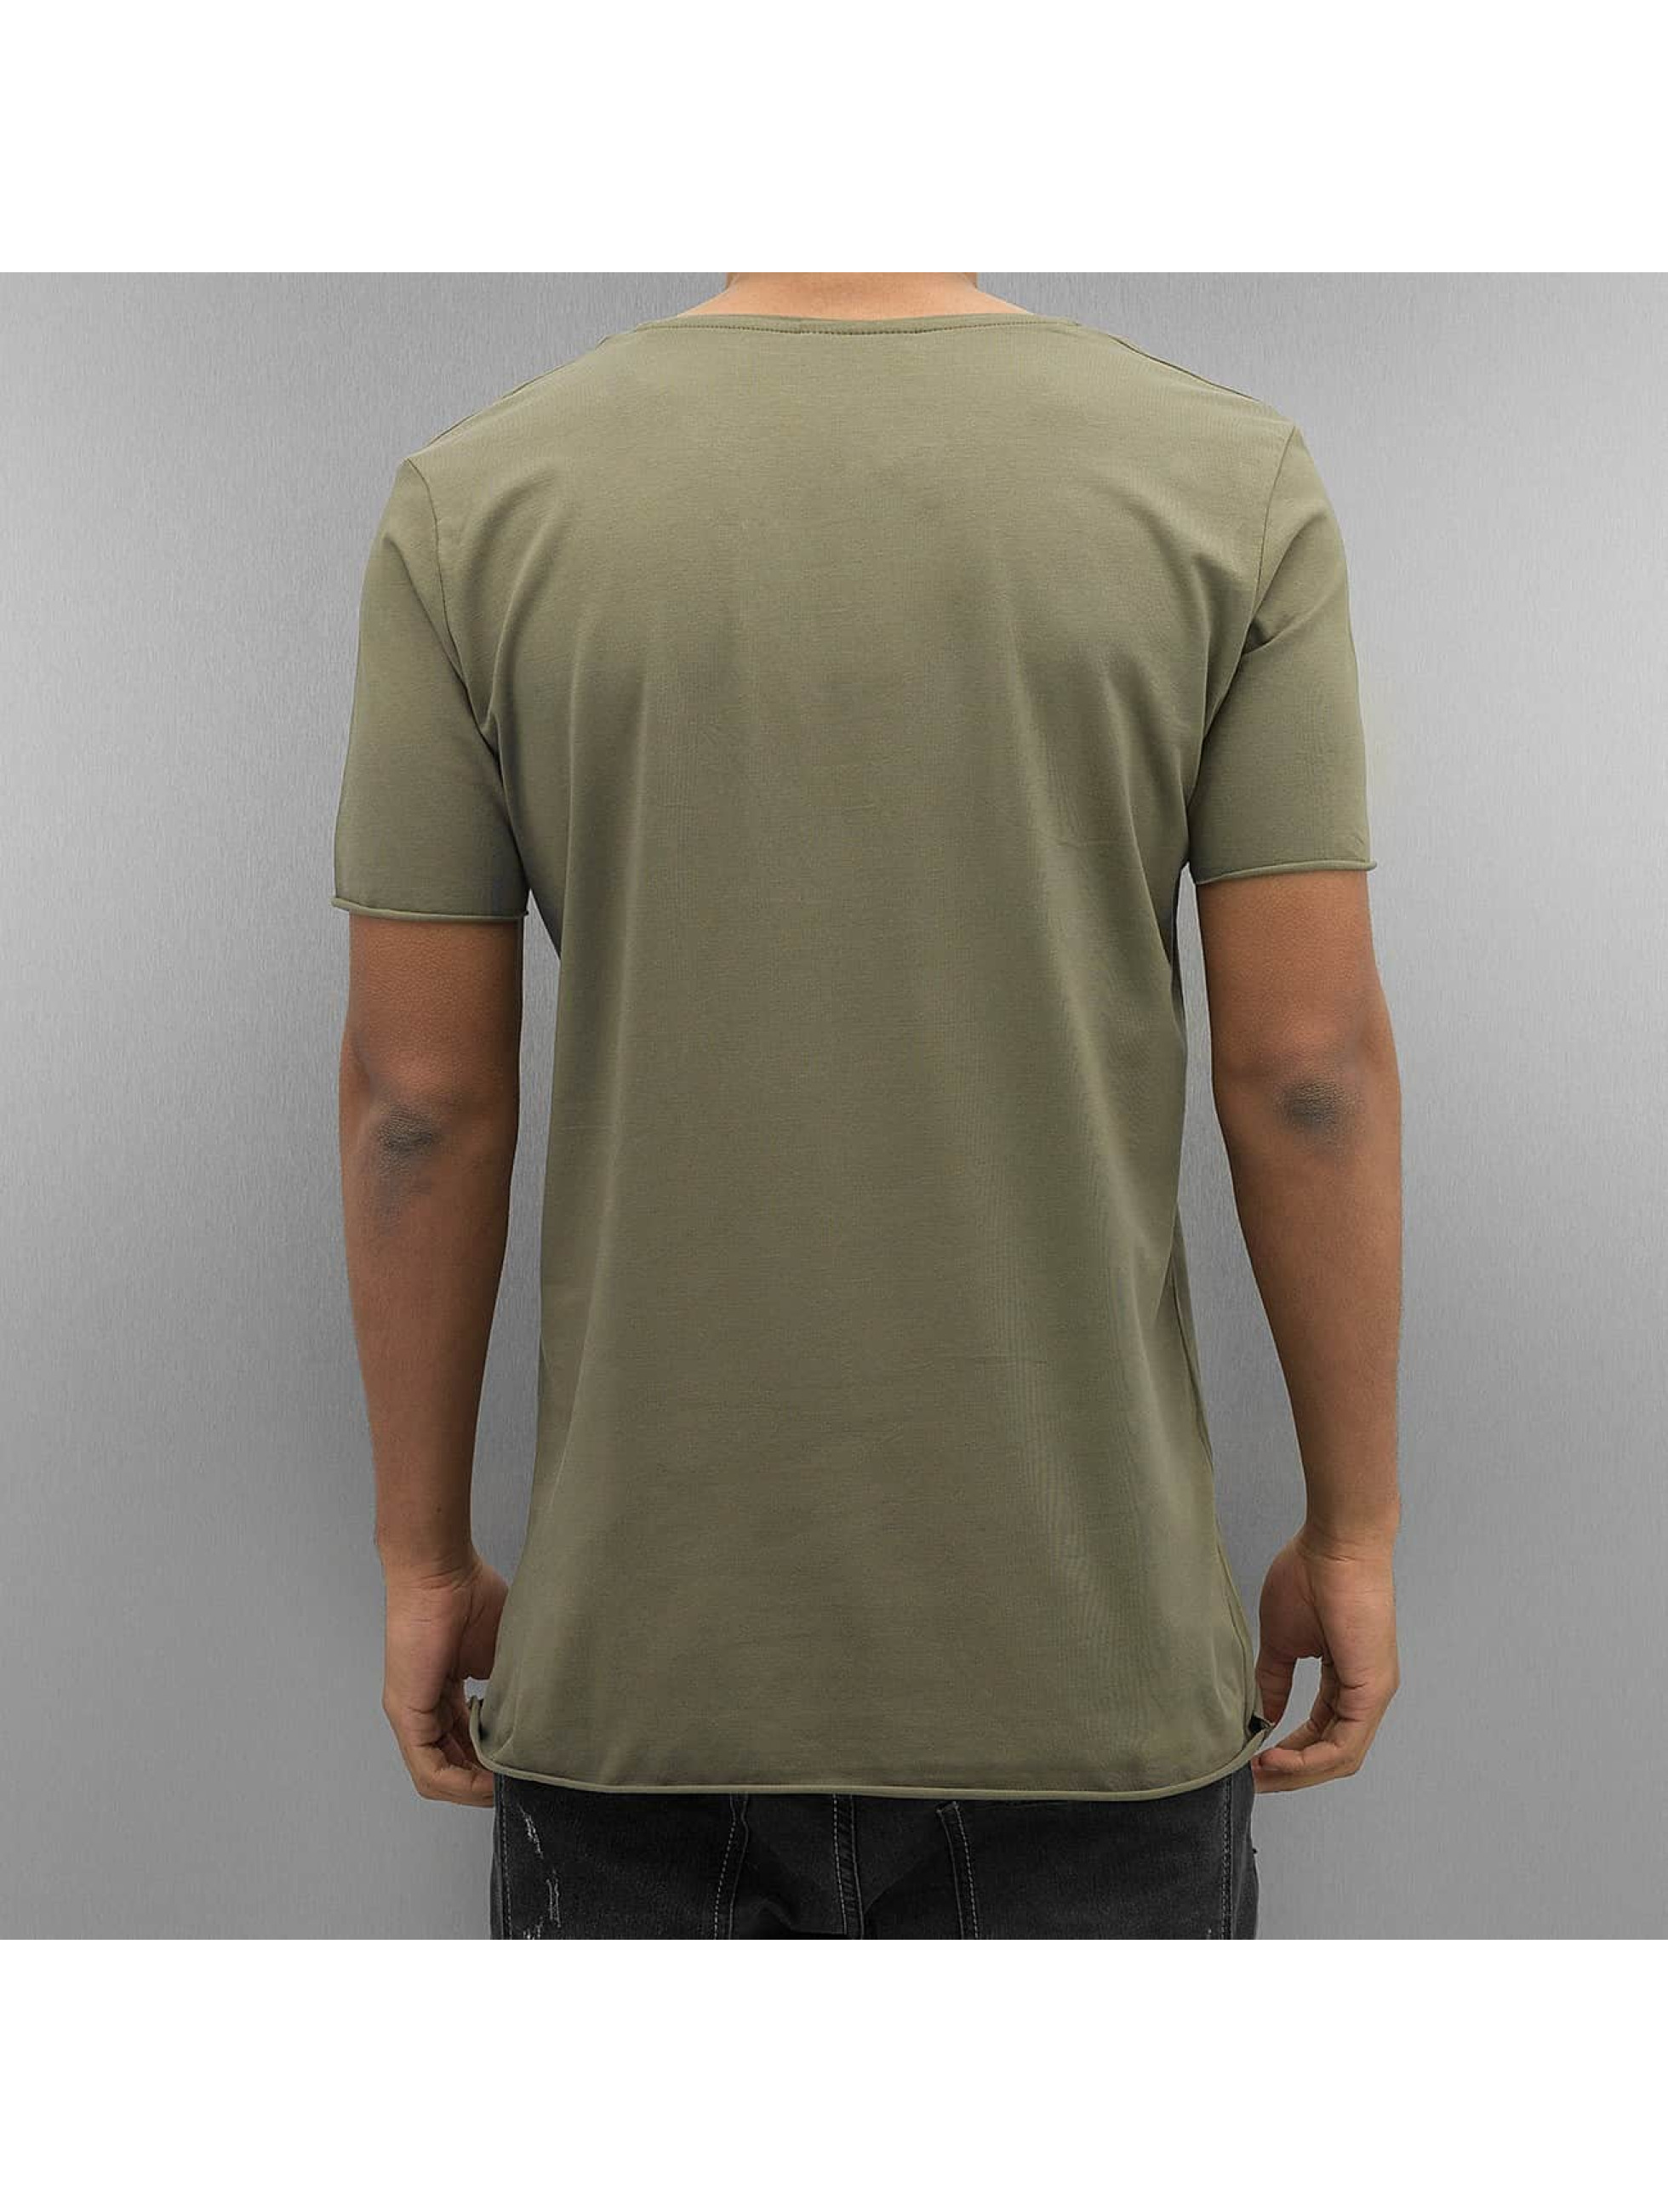 2Y T-Shirt Buy Now khaki